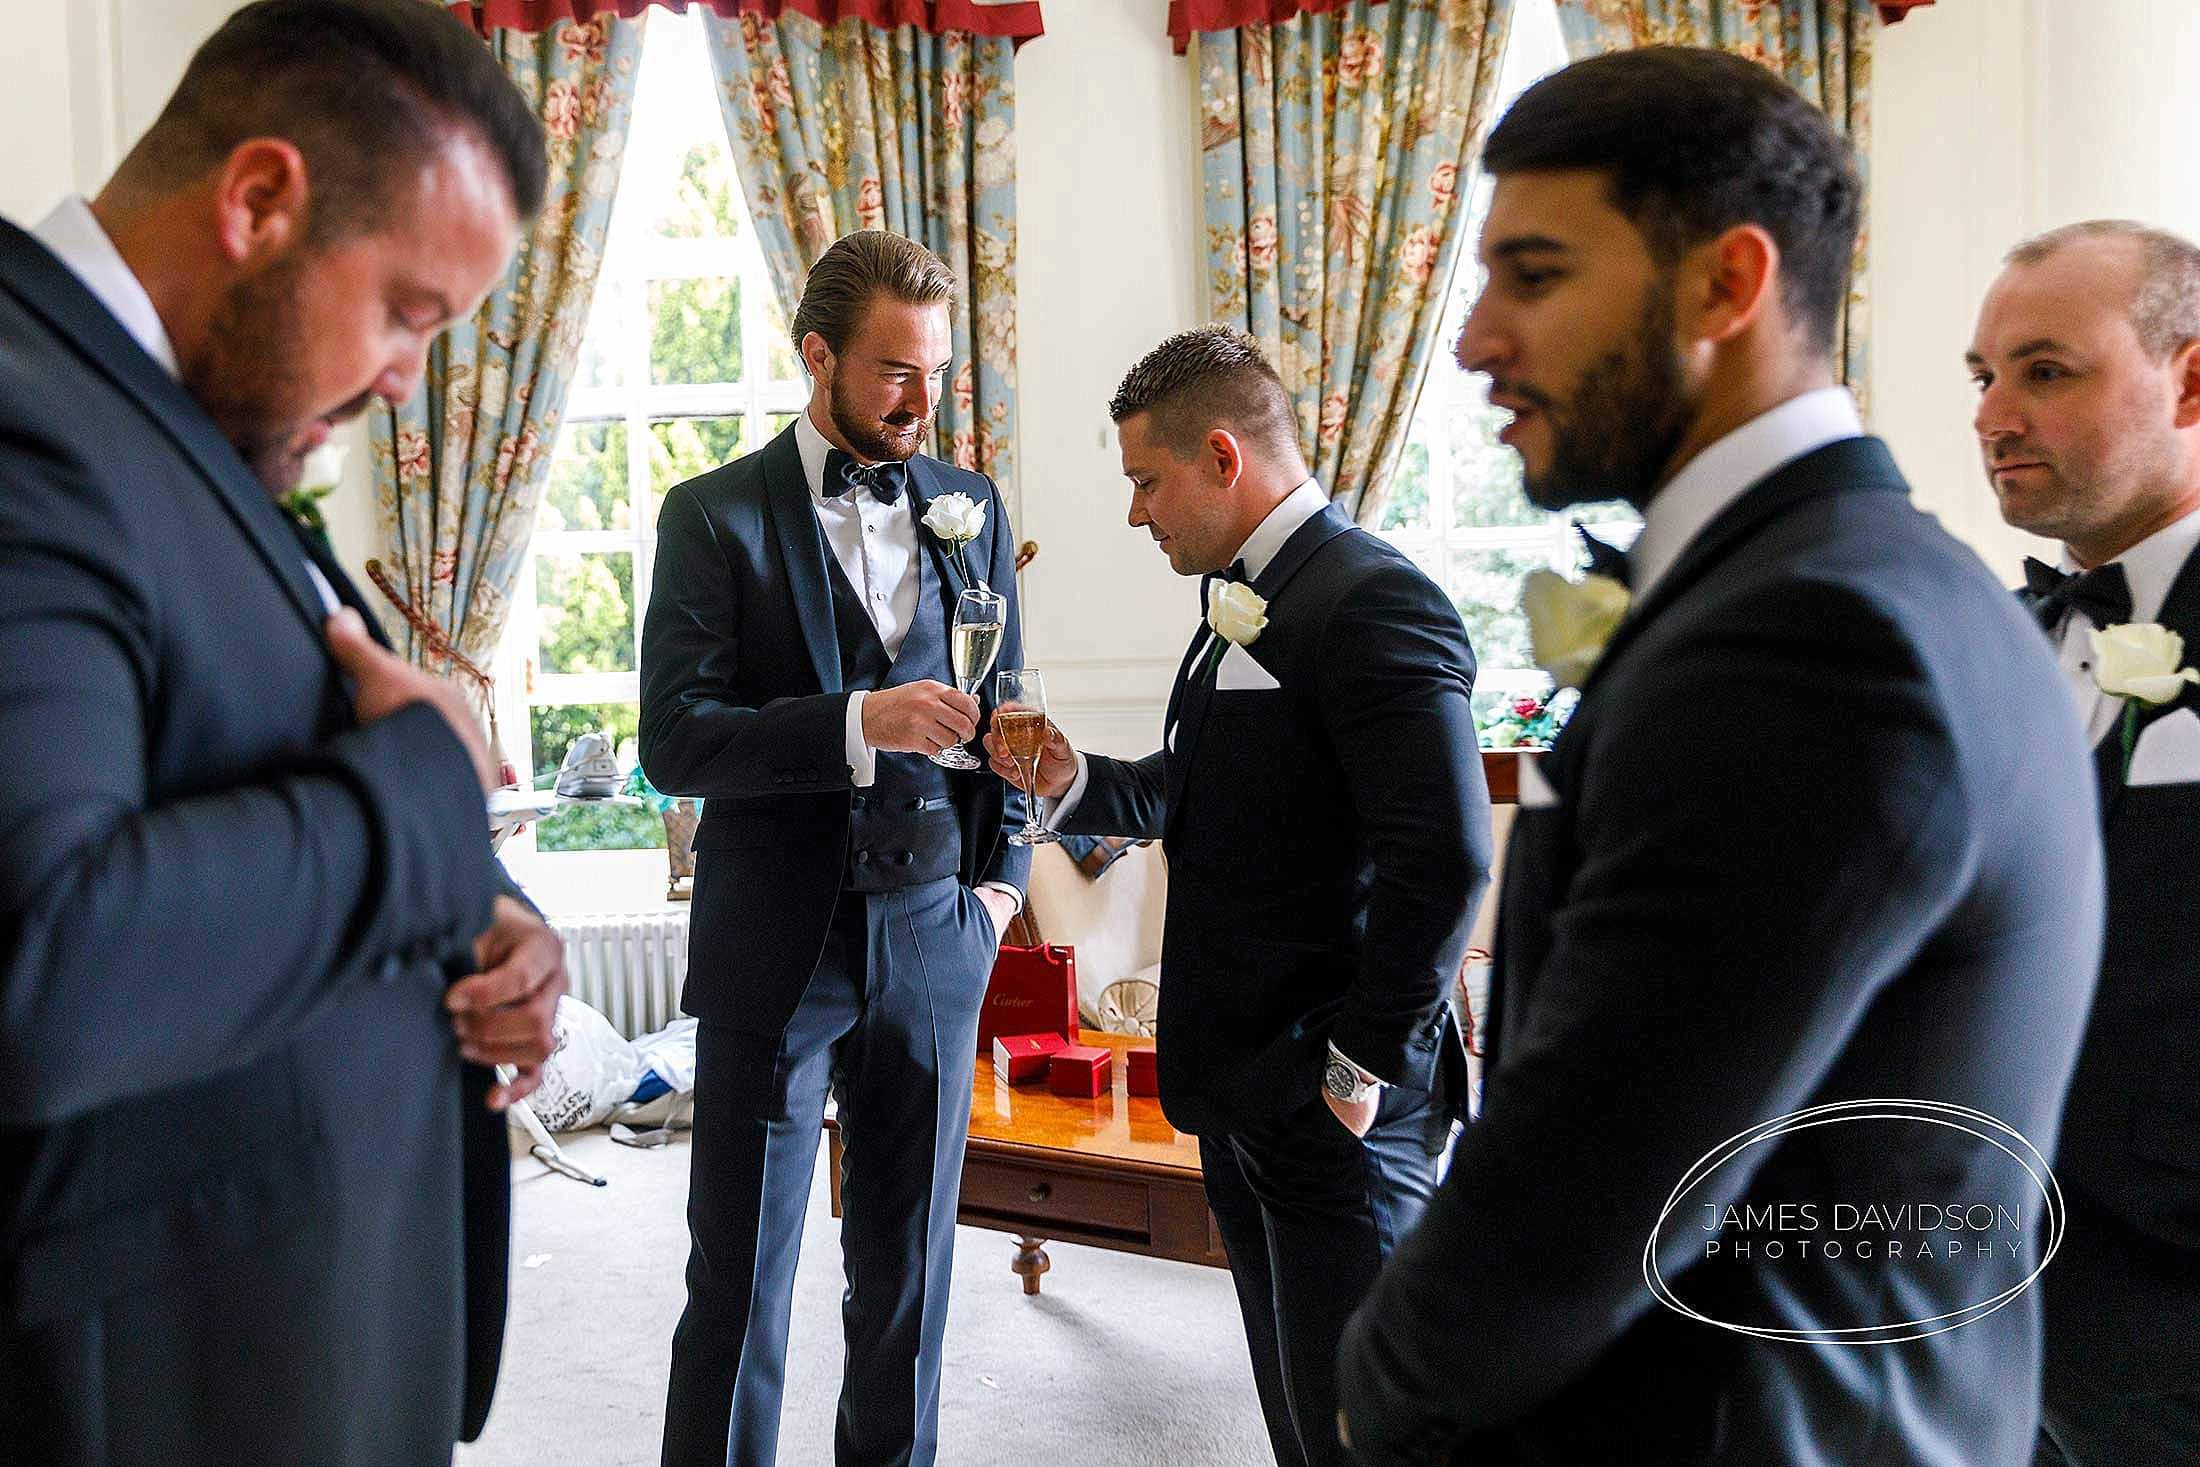 gosfield-hall-wedding-photography-018